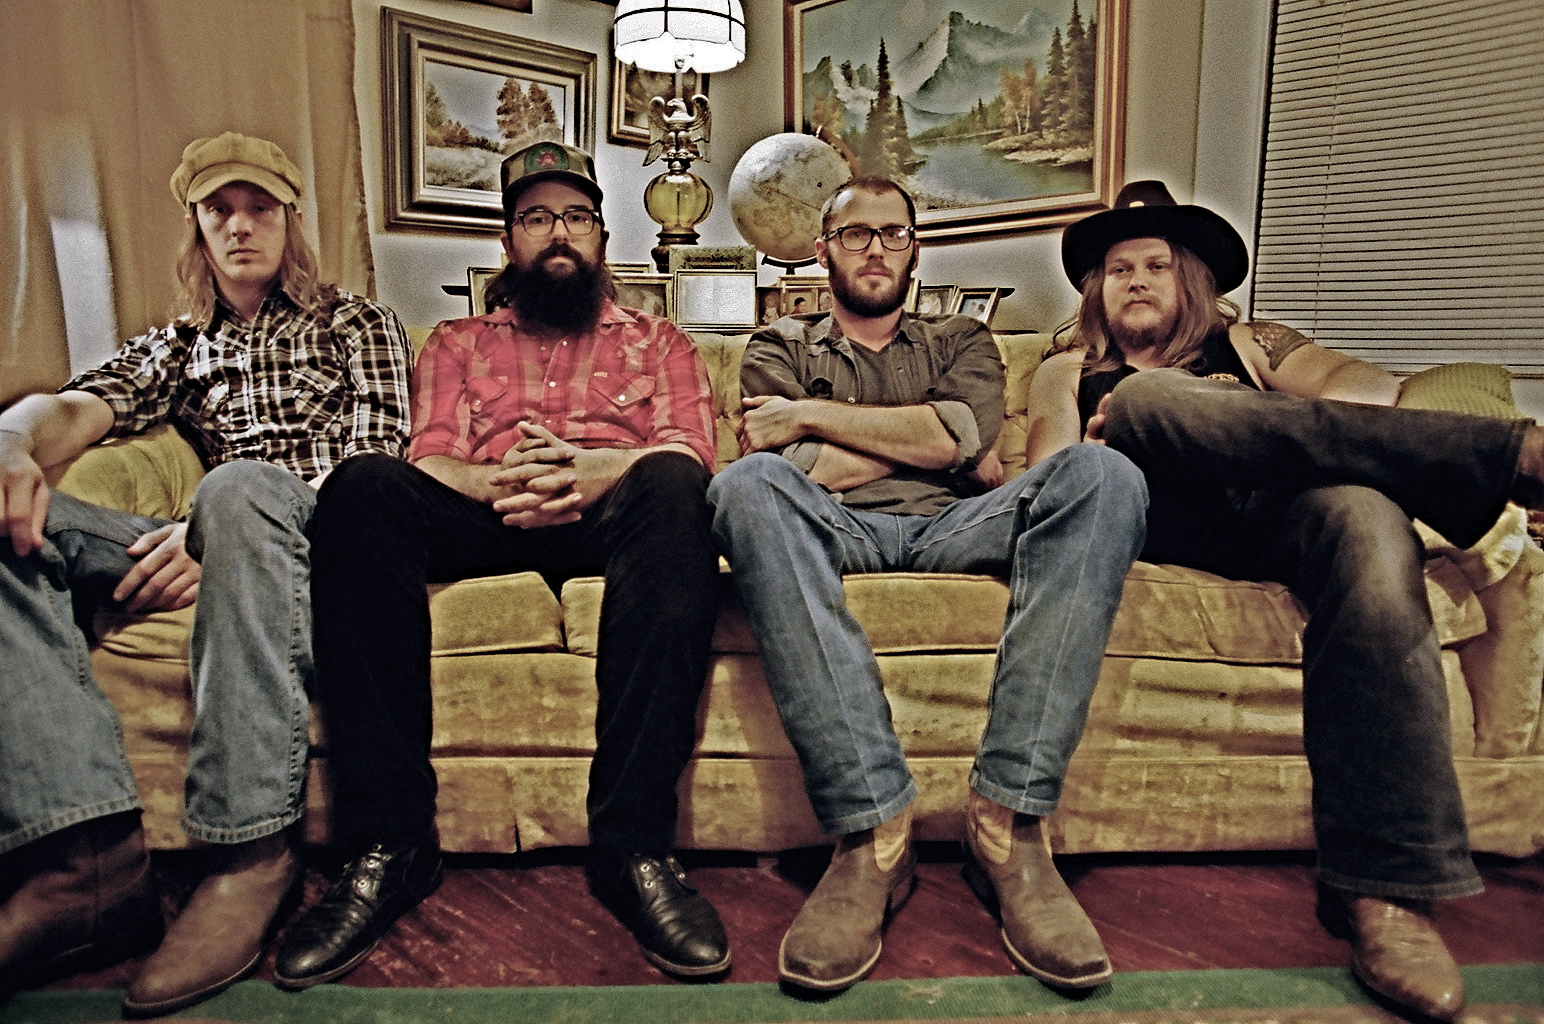 QUAKER CITY NIGHTHAWKS FRIDAY, JUNE 9   Quaker City Night Hawks' brand of hard rock n' roll is bred from Texas boogie, Memphis soul and heavy blues. Their music is southern rock right out of '75, played with the fervor of a sermon crackling out of the radio in a '68 Lincoln.